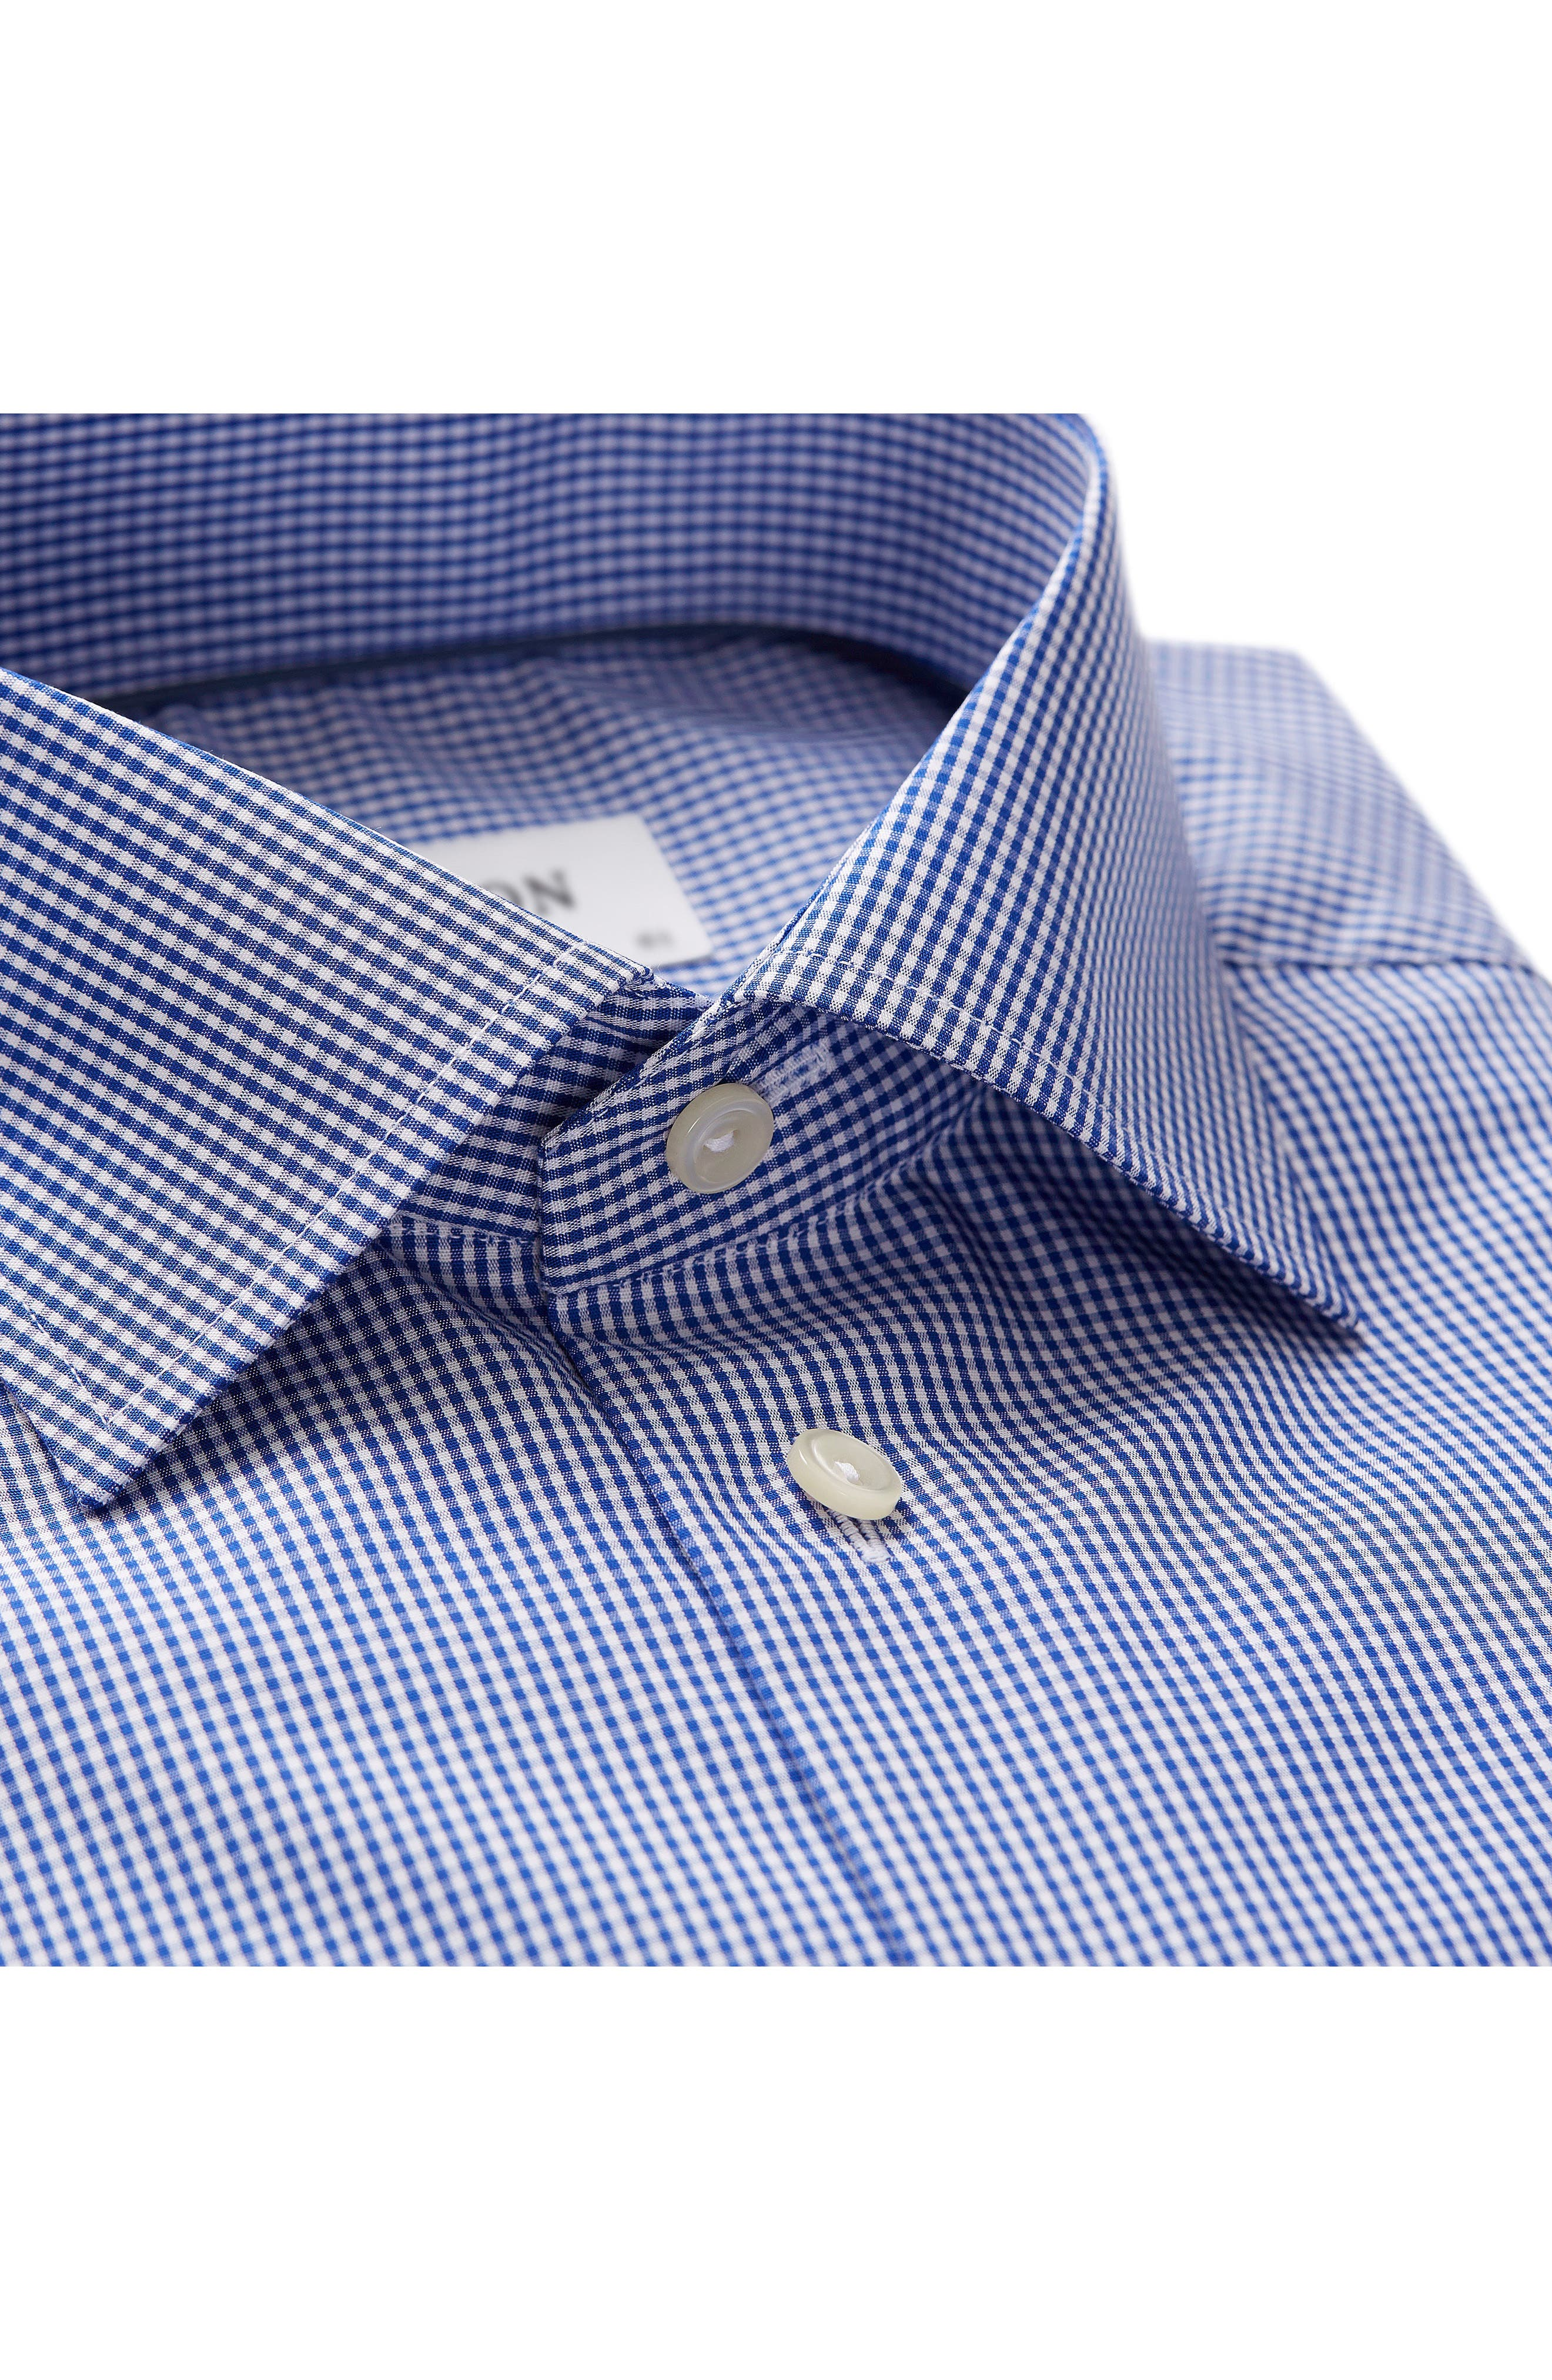 Contemporary Fit Check Dress Shirt,                             Alternate thumbnail 4, color,                             MID BLUE